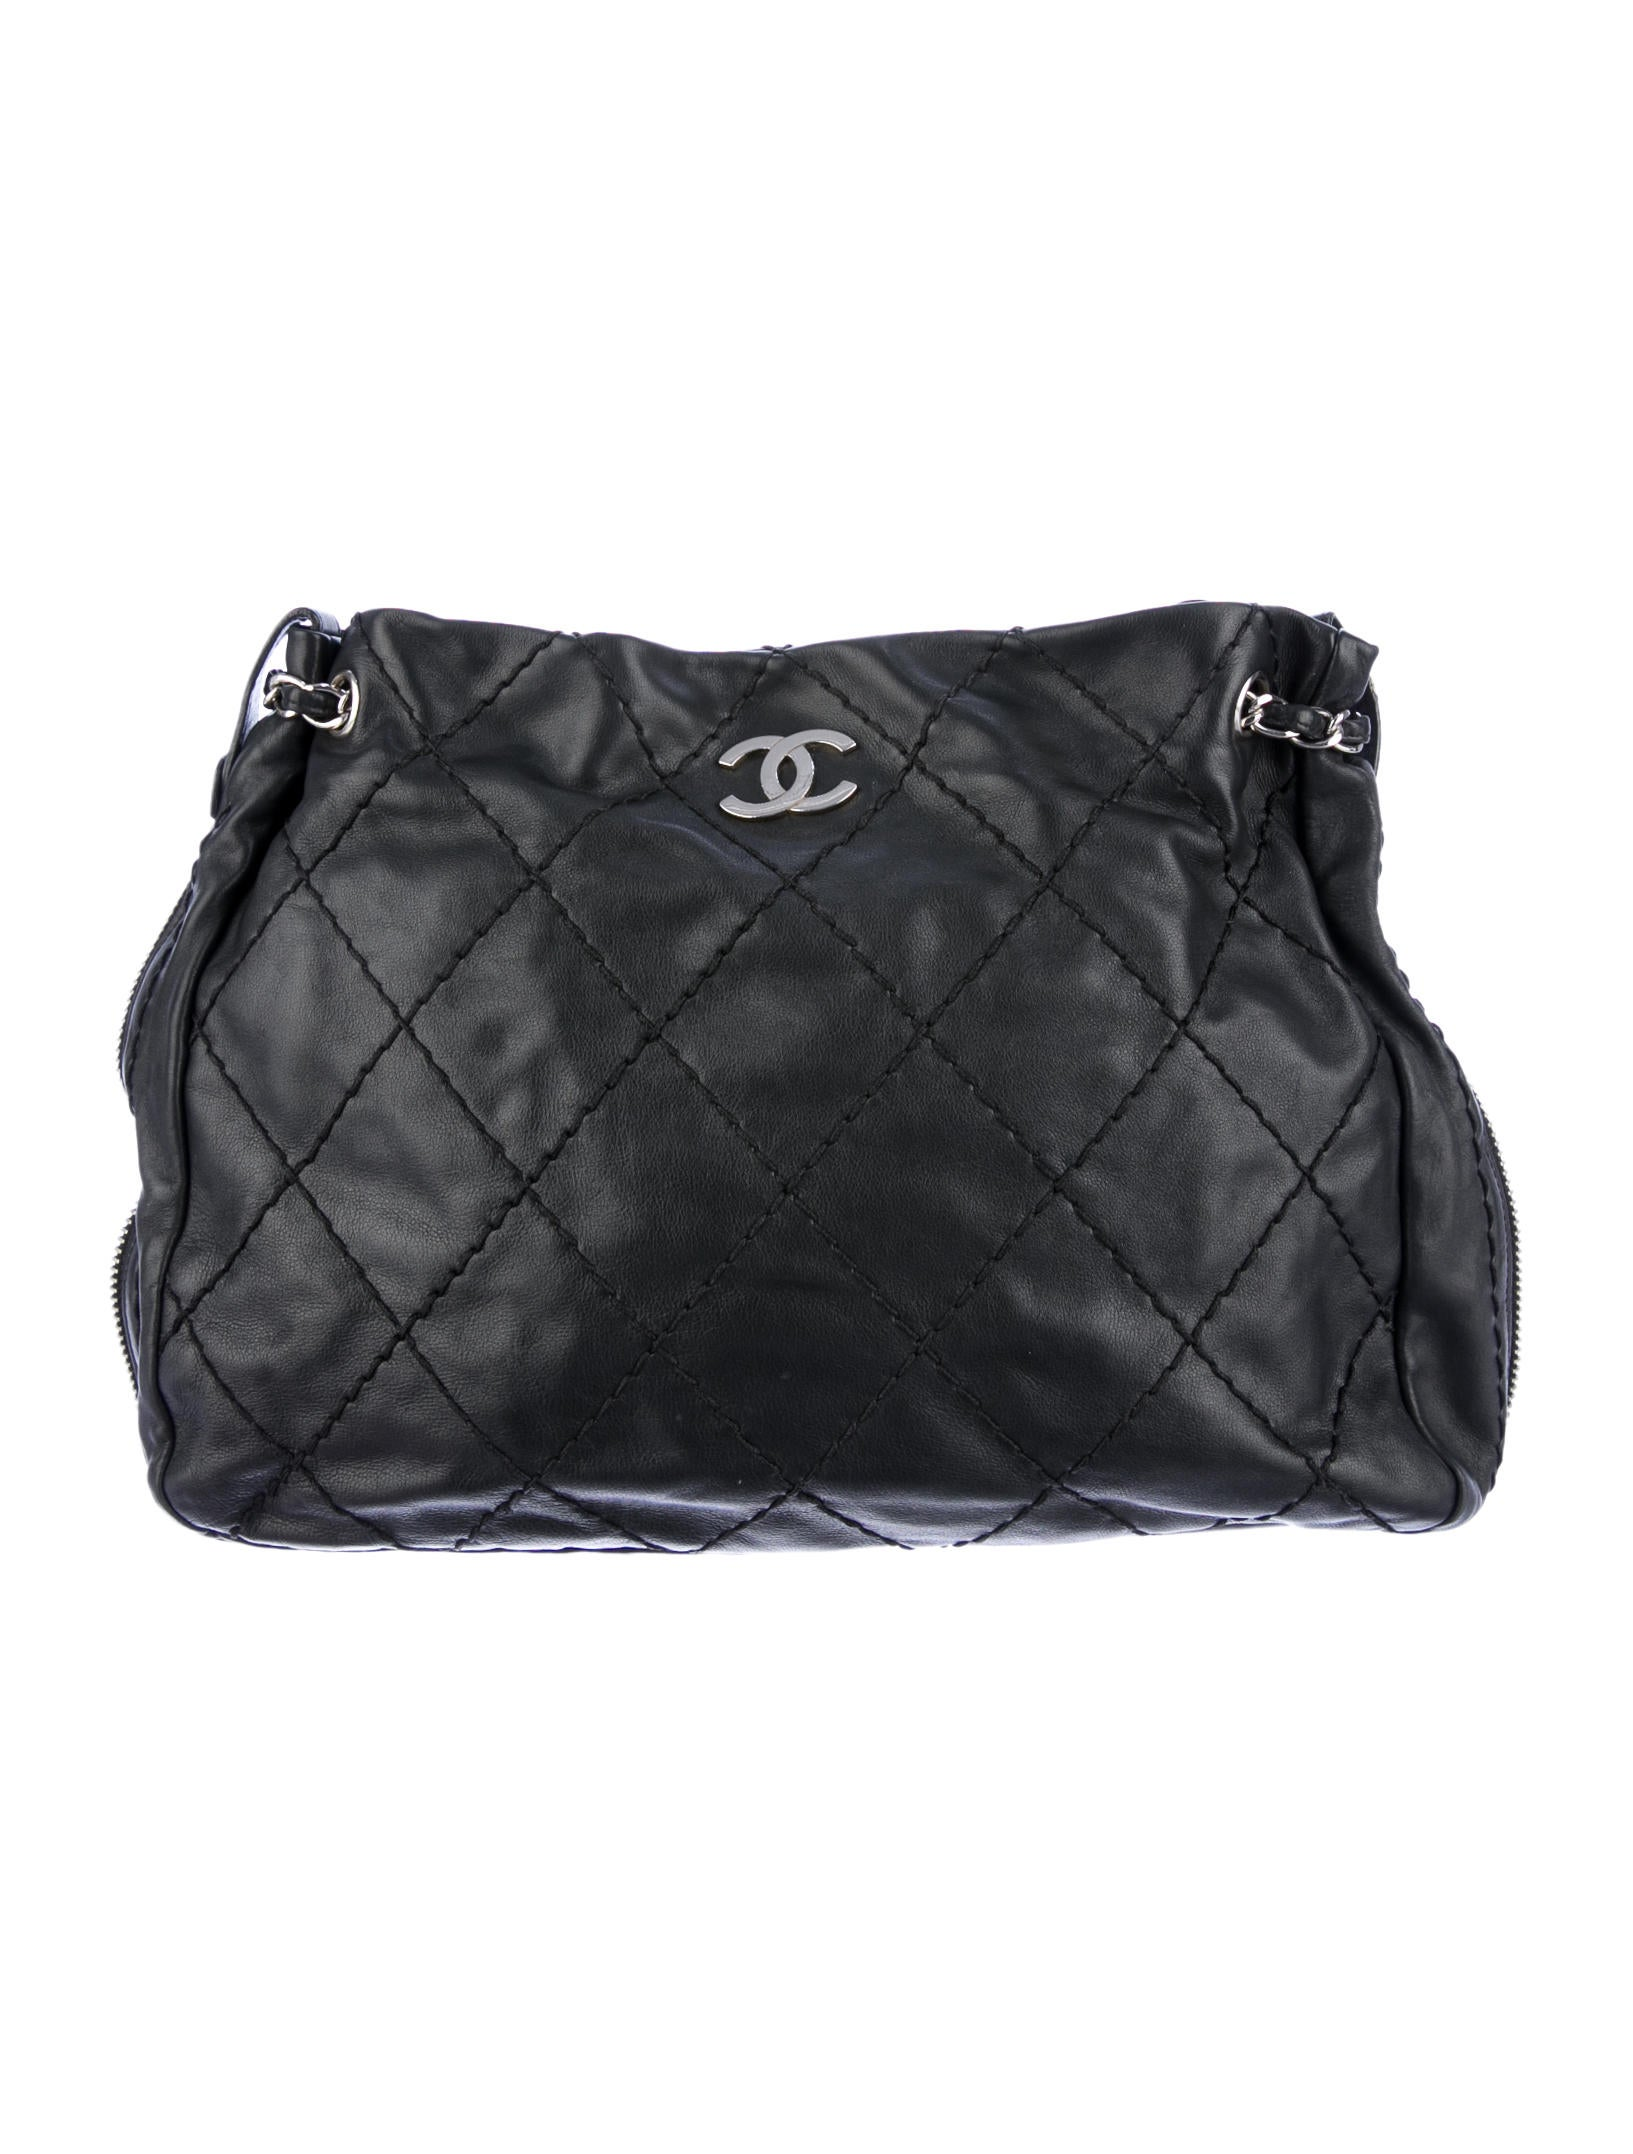 4a45f67f736a Chanel Expandable Tote - Handbags - CHA51327 | The RealReal